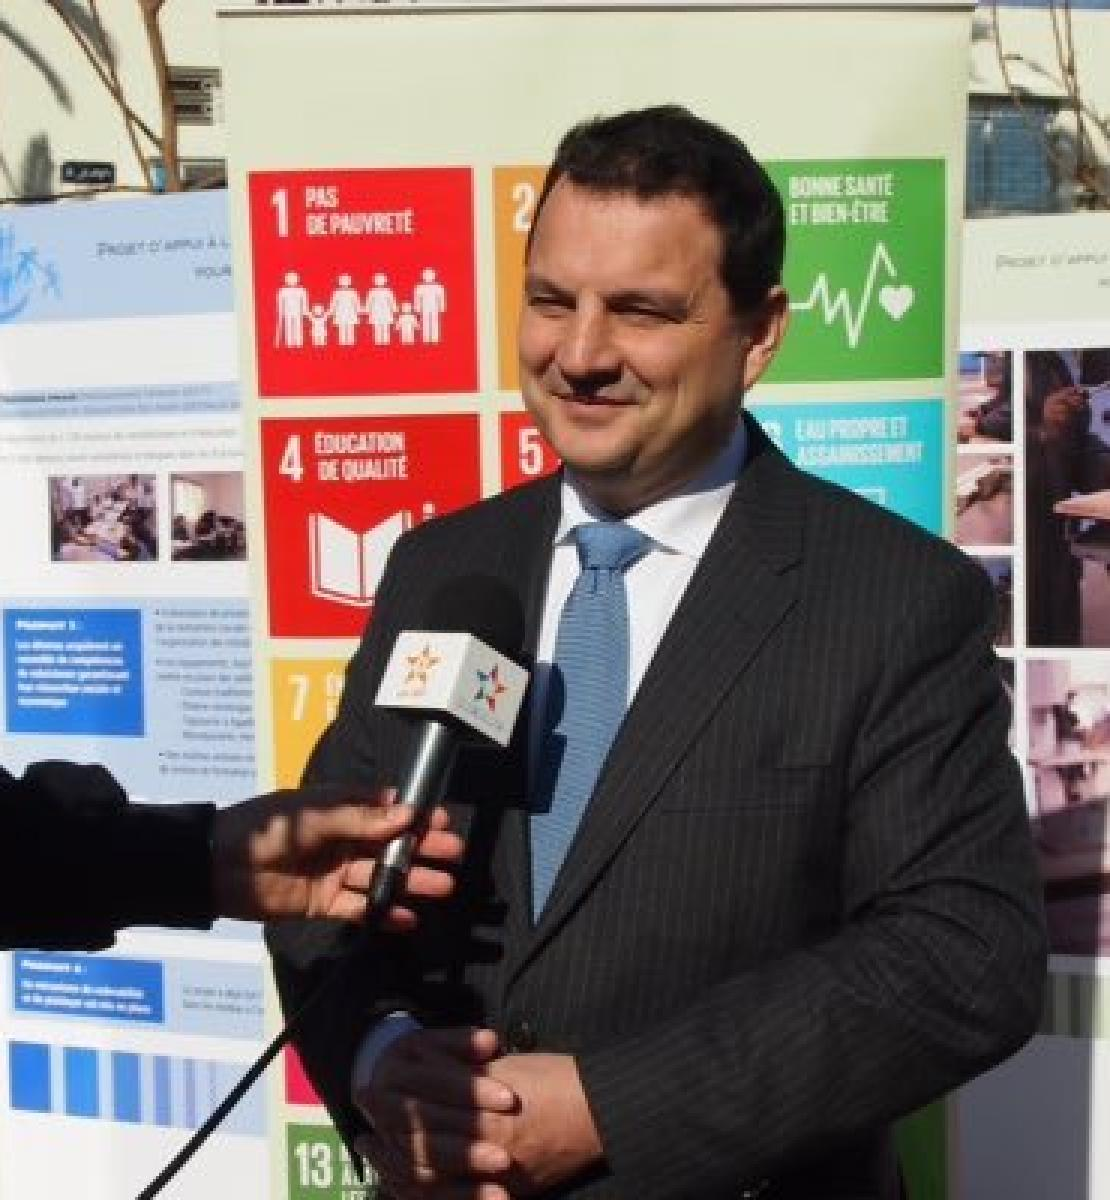 Image shows Philippe Poinsot being interviewed in front of an SDG banner